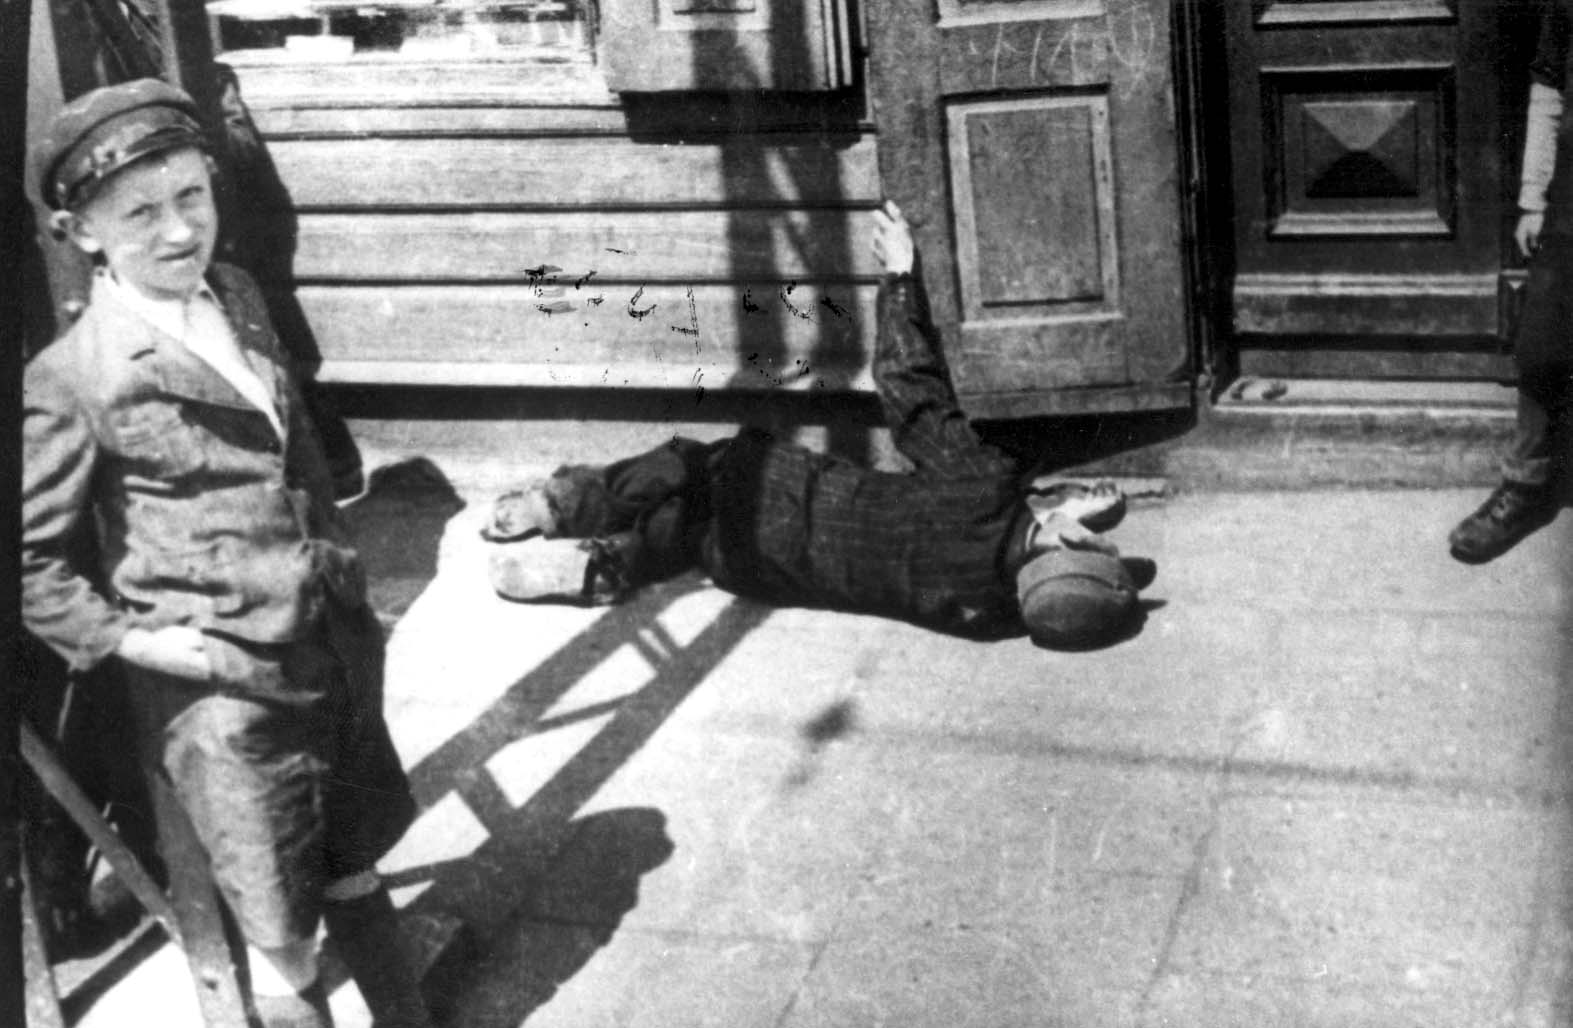 Lodz, Poland, A child standing next to an exhausted man lying in the street